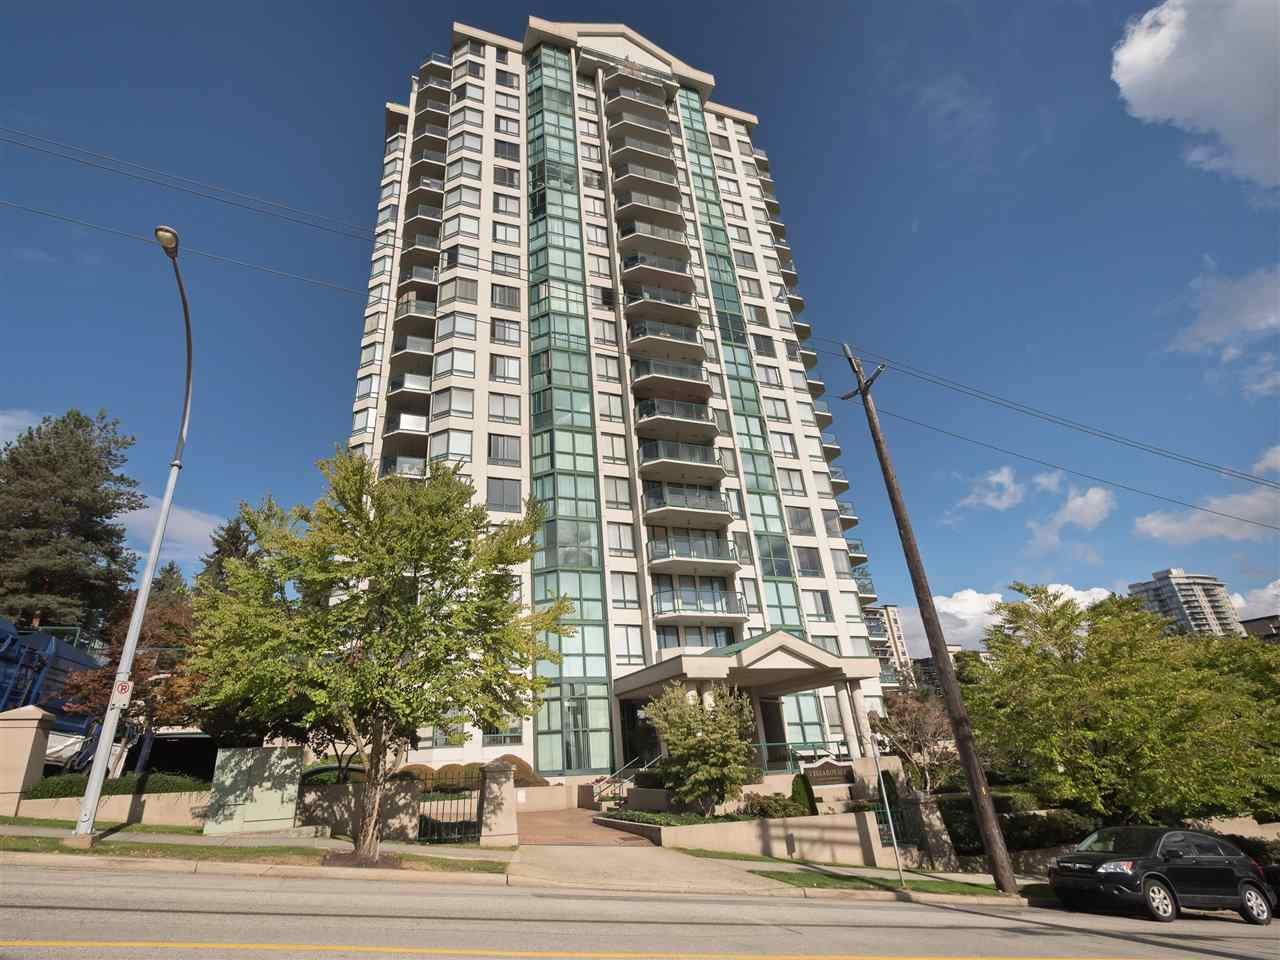 It is my pleasure to present VISTA ROYALE - One of New West's sought after, quality built CONCRETE Highrise by BOSA! Spacious 2 Bed, 2 Bath, 1160 SqFt Sun-Drenched CORNER Suite w/Lovely River & City Views! Laminate flooring thru-out. Generous size rooms & ample windows to enjoy the natural light. Kitchen w/large pass-through, S/S appls & dual sinks. Master w/walk-through closets & En-suite. Worry free complex - Exterior Painted in 2008, Re-Plumbed in 2009, New Roof in 2015, updated modern lobby & fitness centre.  Very well managed complex w/on-site caretaker & use of fantastic amenities - gym, sauna, party room for 50, healthy CRF & More! Short stroll to SKYTRAIN, schools, shopping & the River Market. Sorry, no pets. Investors: Rentals Permitted! Open House Sun Oct 8th 2-4pm